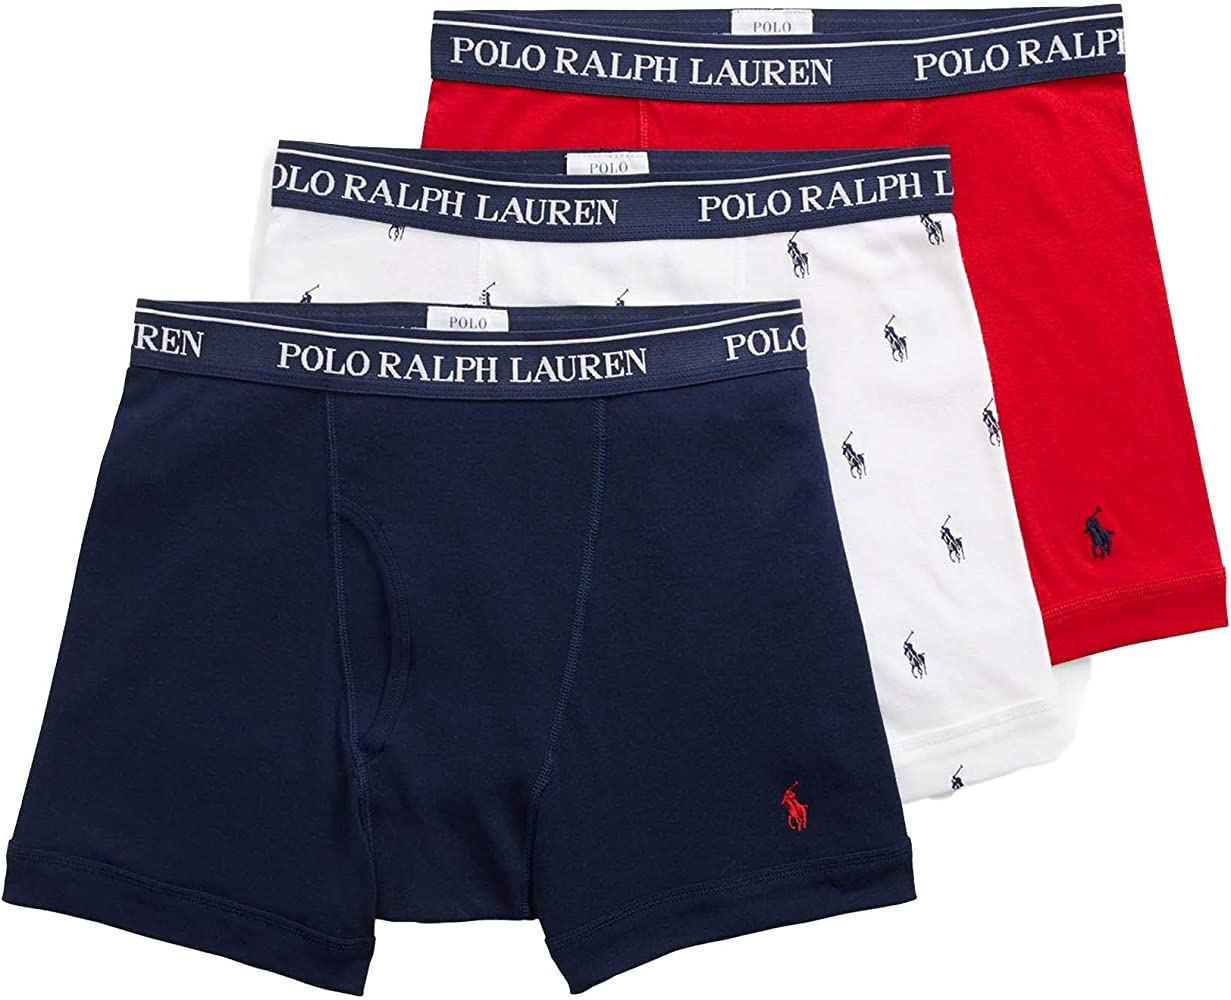 Polo Ralph Lauren Classic Cotton Boxer Brief 3-Pack, L, White ...